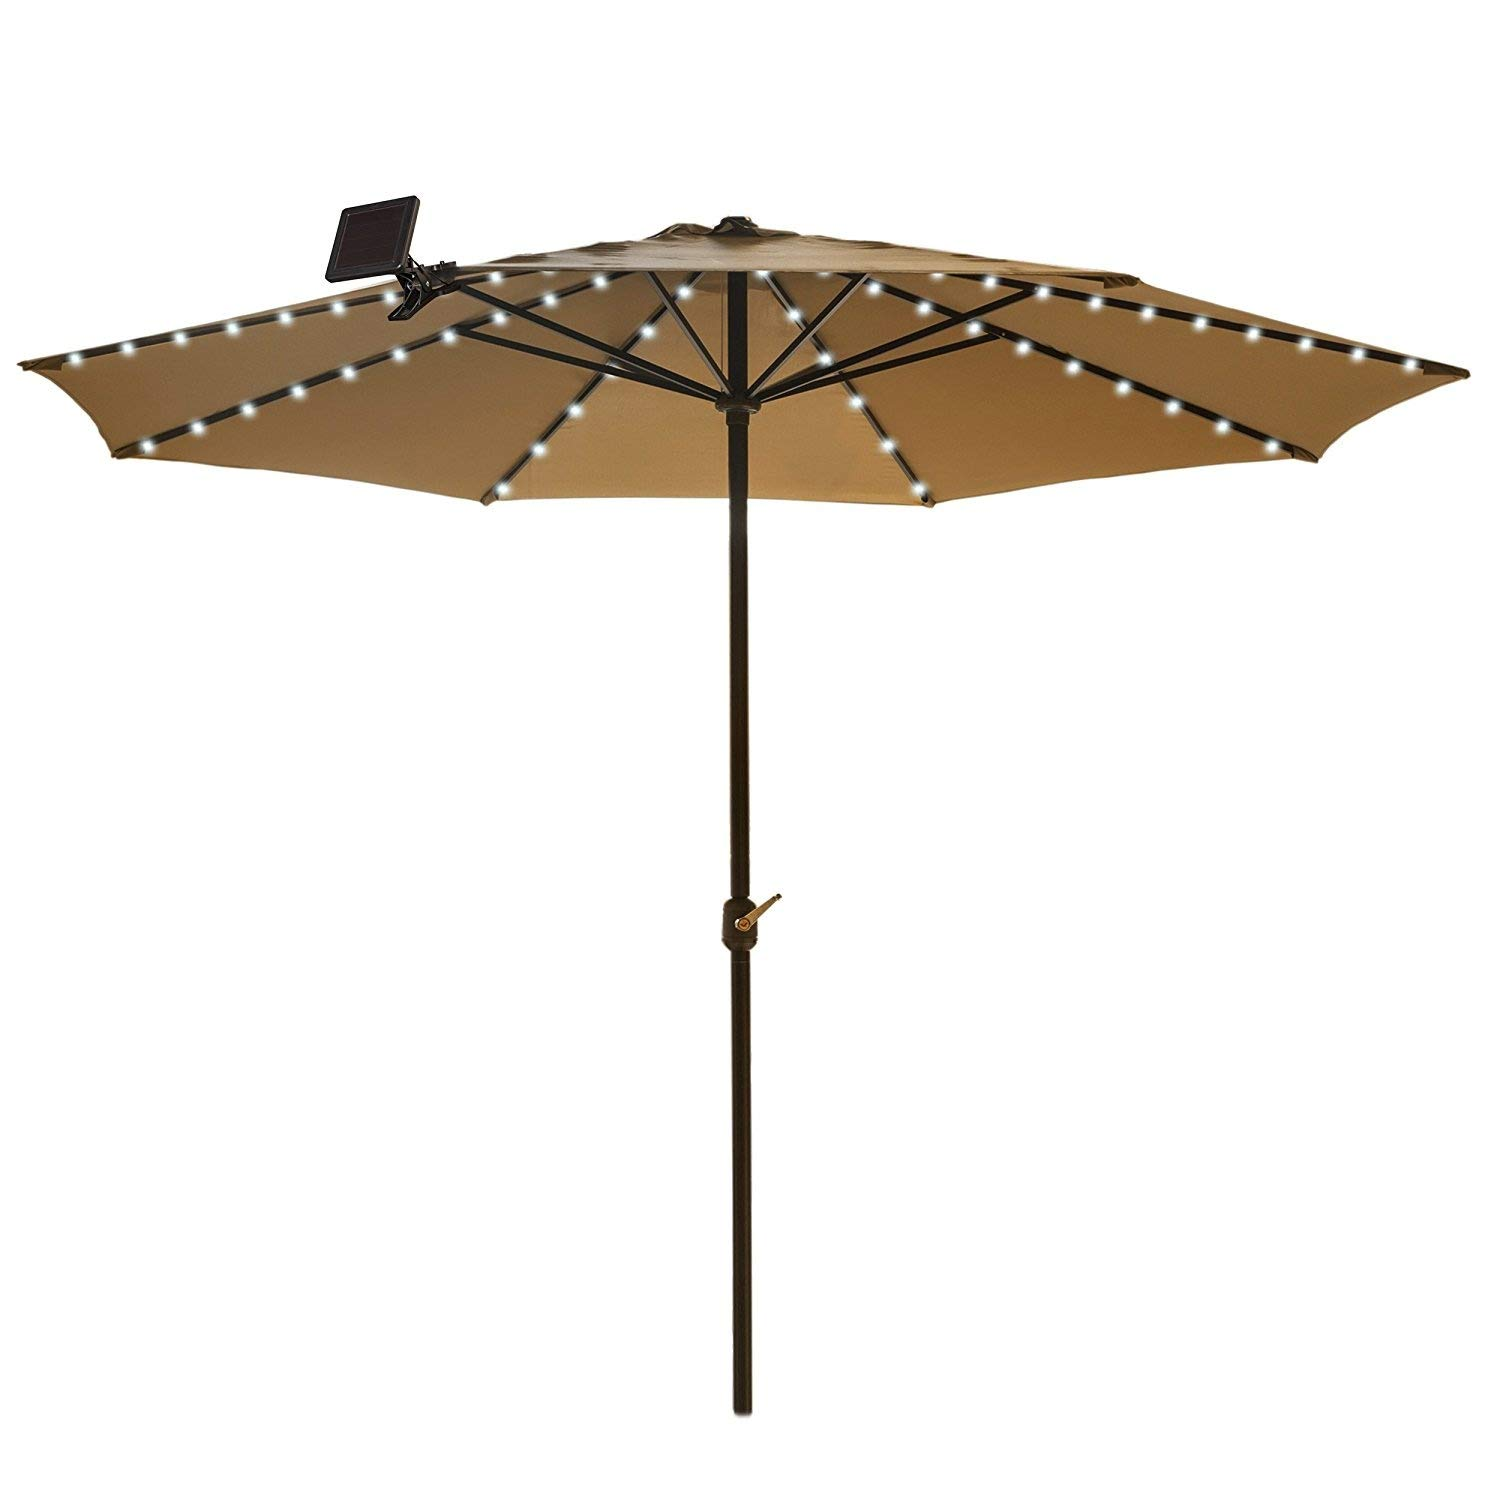 Umbrella Solar String Lights - Cool White - 72 total LEDs, 8 strings, 9 LEDs per string by Touch Of ECO